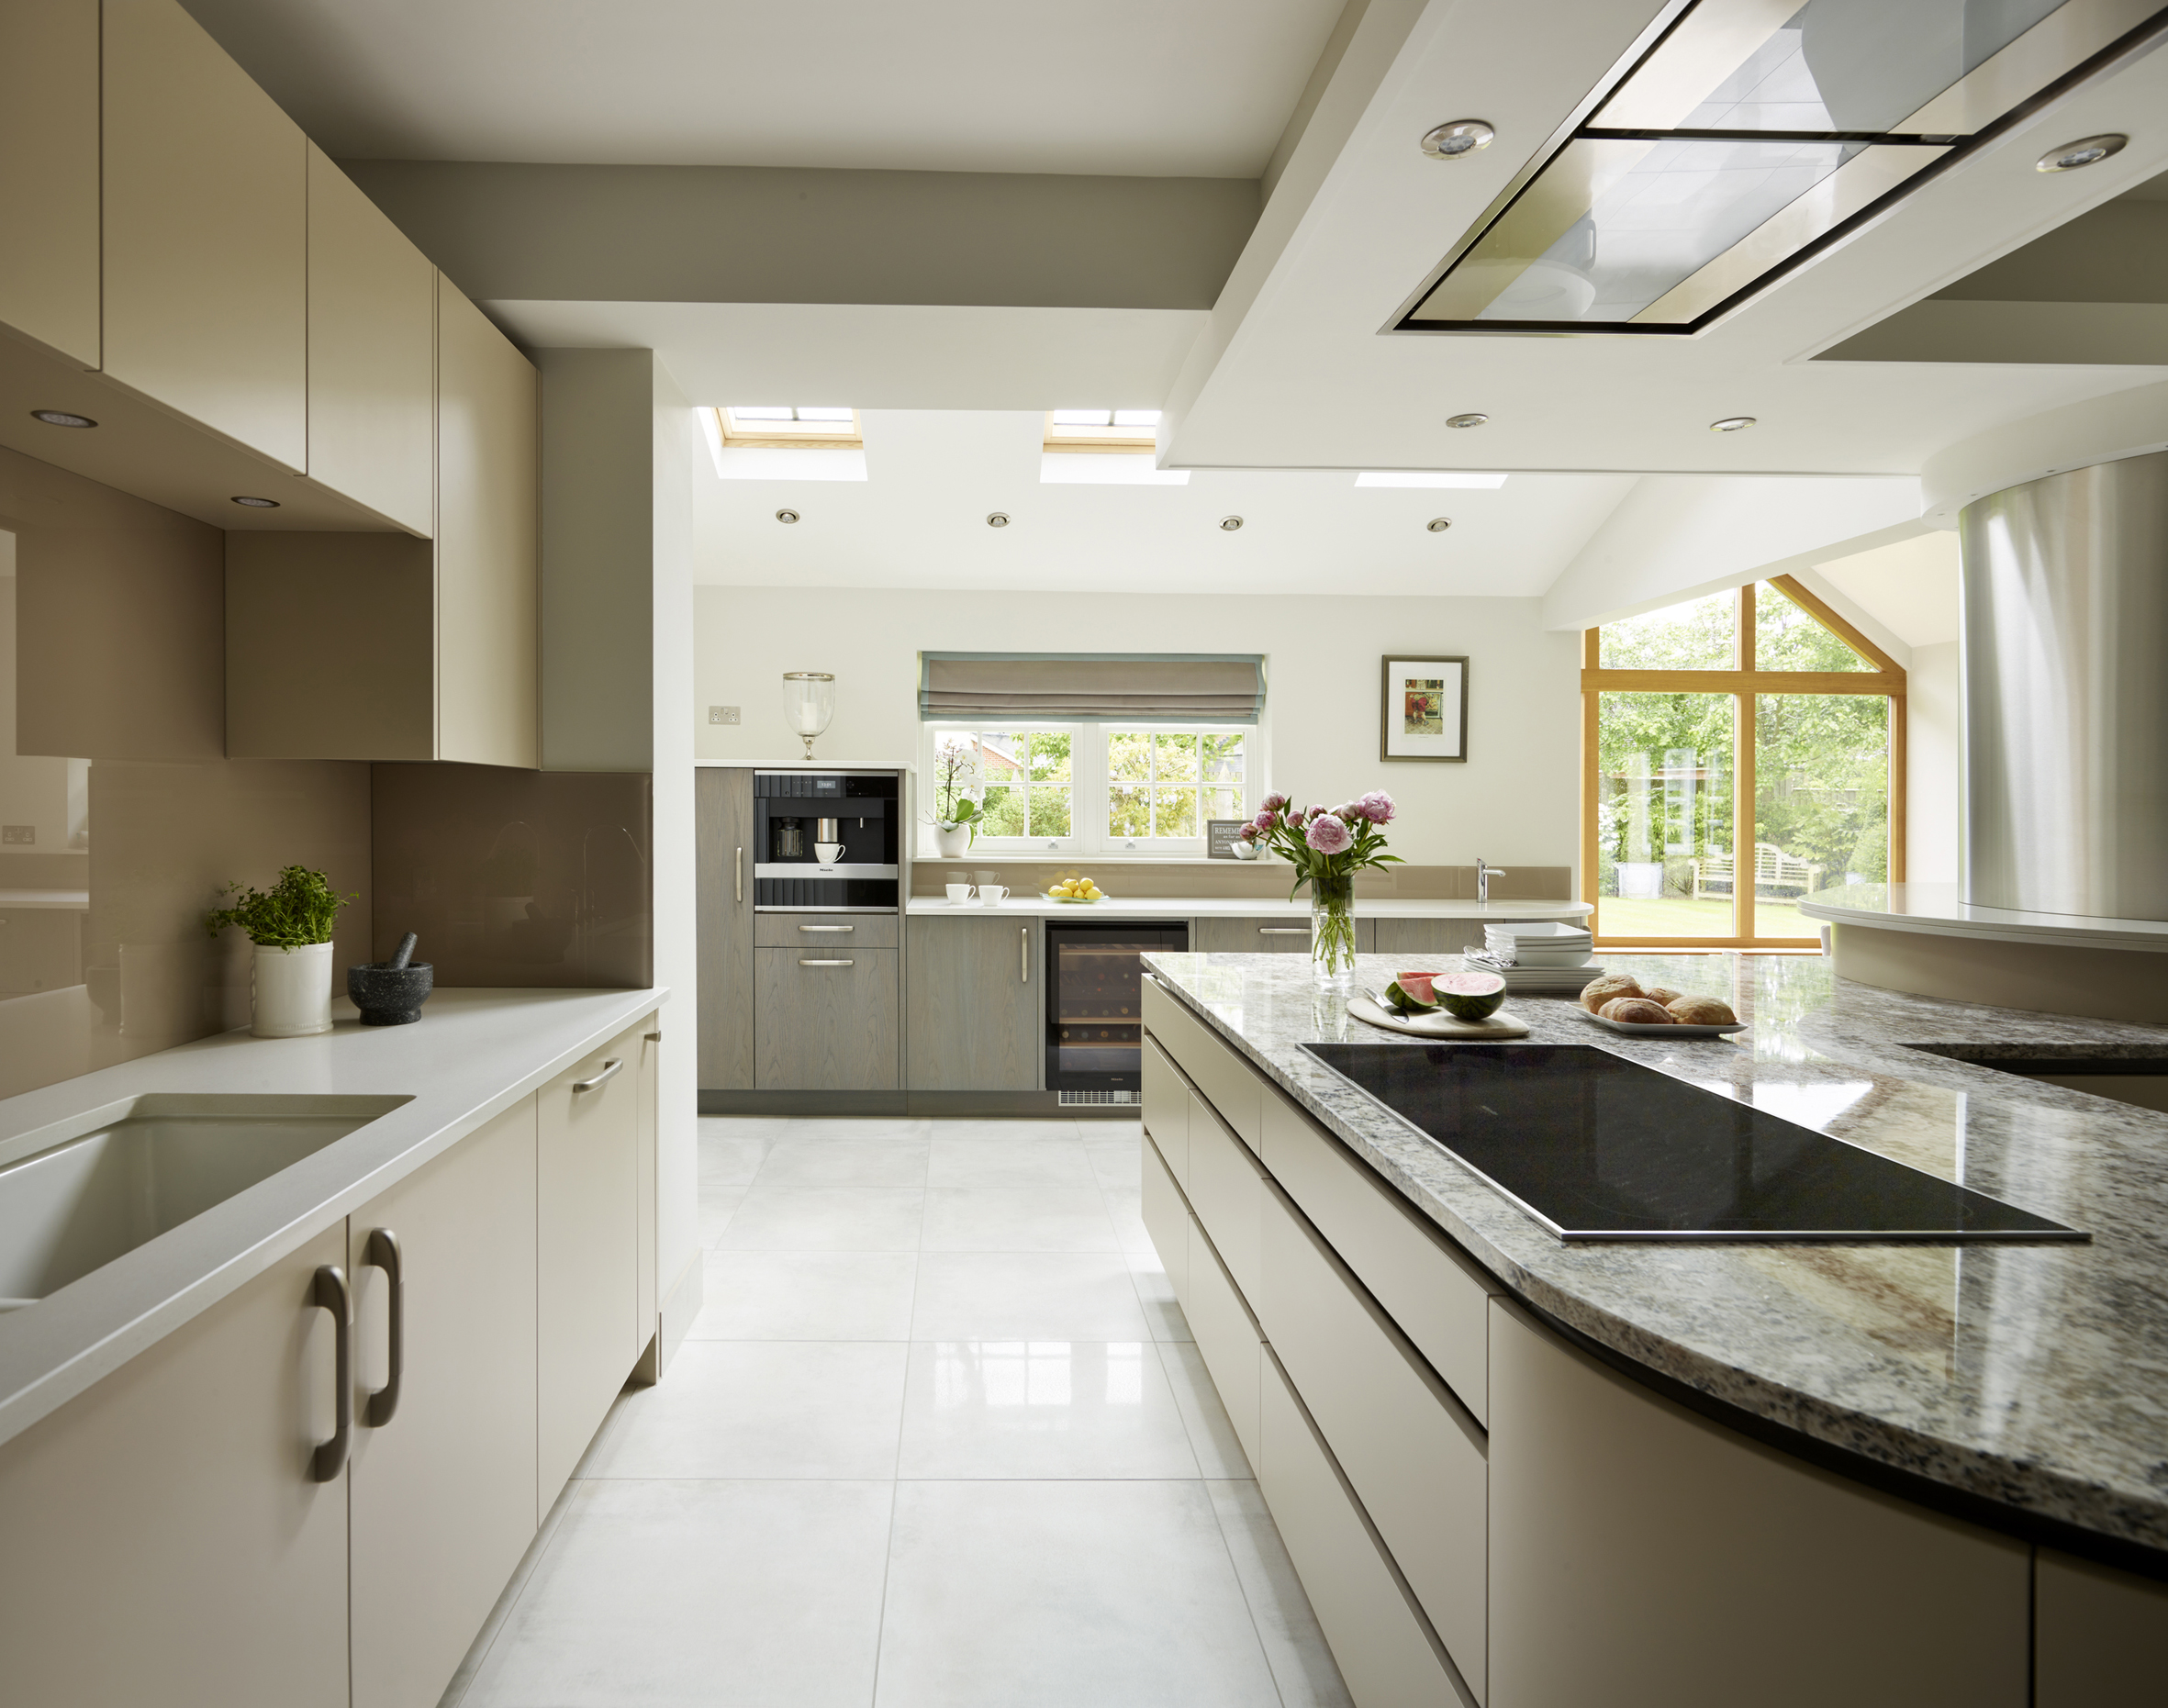 Miele Kitchen Redesign, Davonport Kitchens